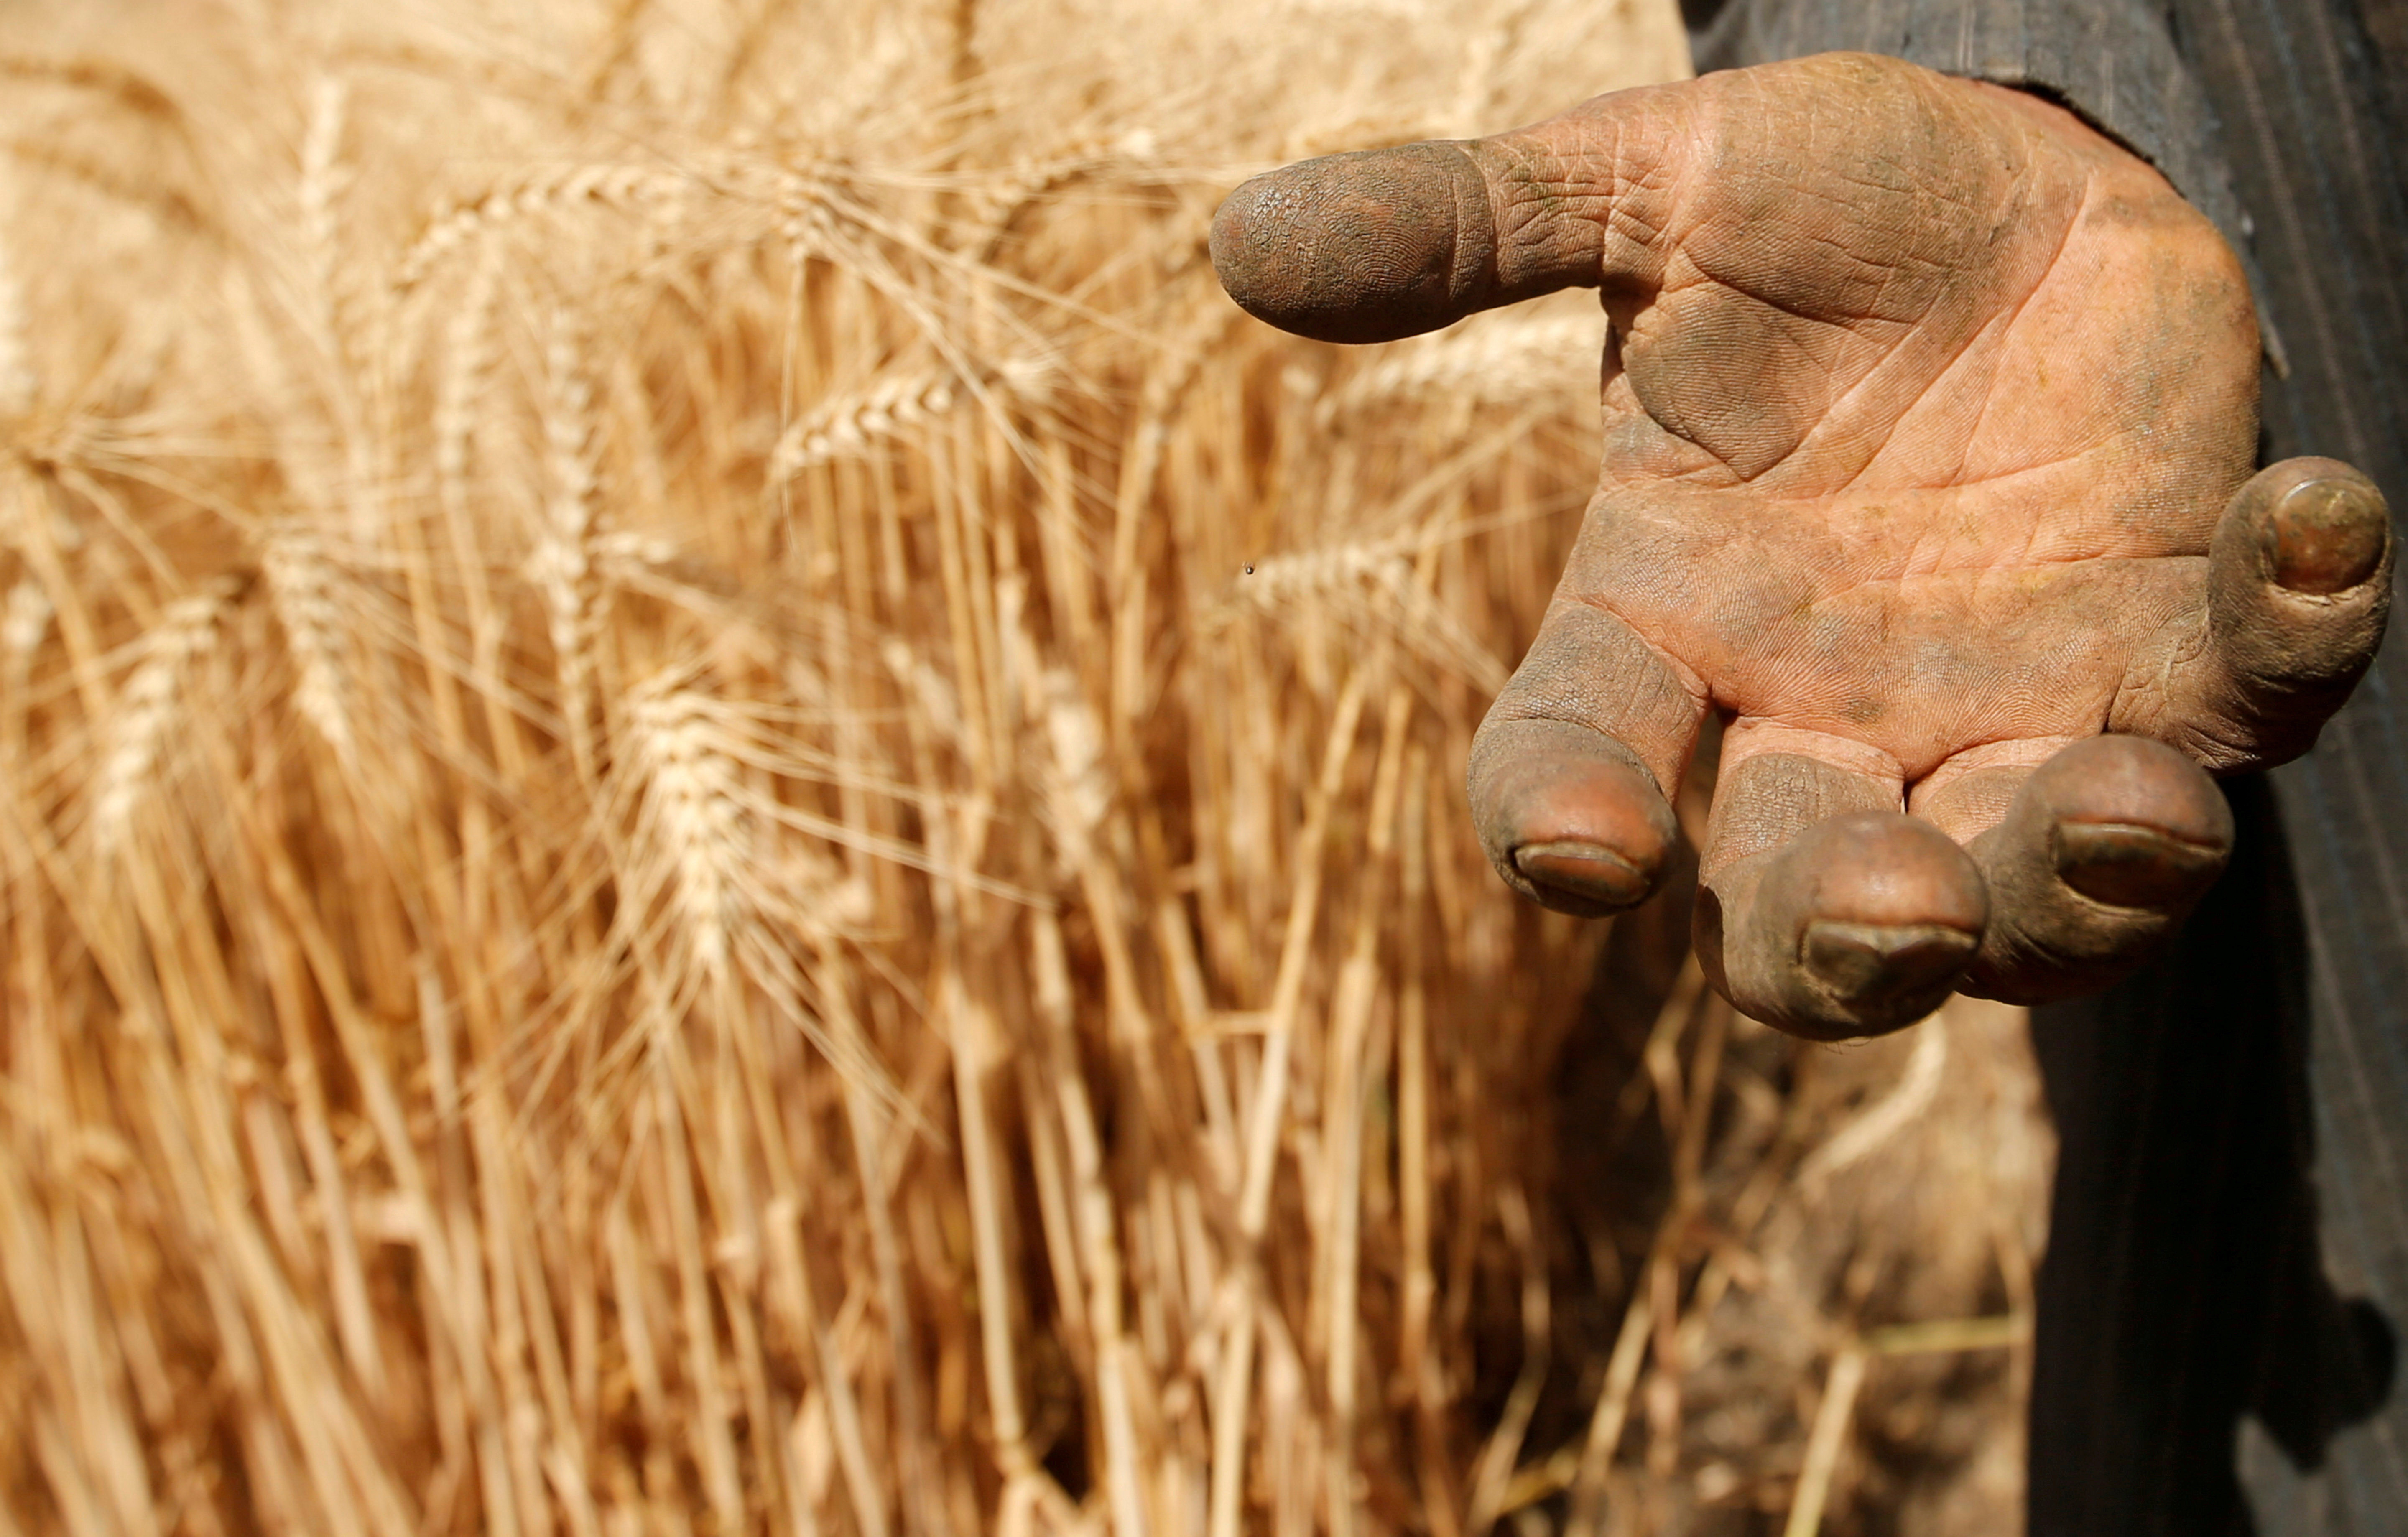 A farmer shows his hand as he harvests wheat on Qalyub farm in the El-Kalubia governorate, northeast of Cairo, Egypt May 1, 2016. REUTERS/Amr Abdallah Dalsh